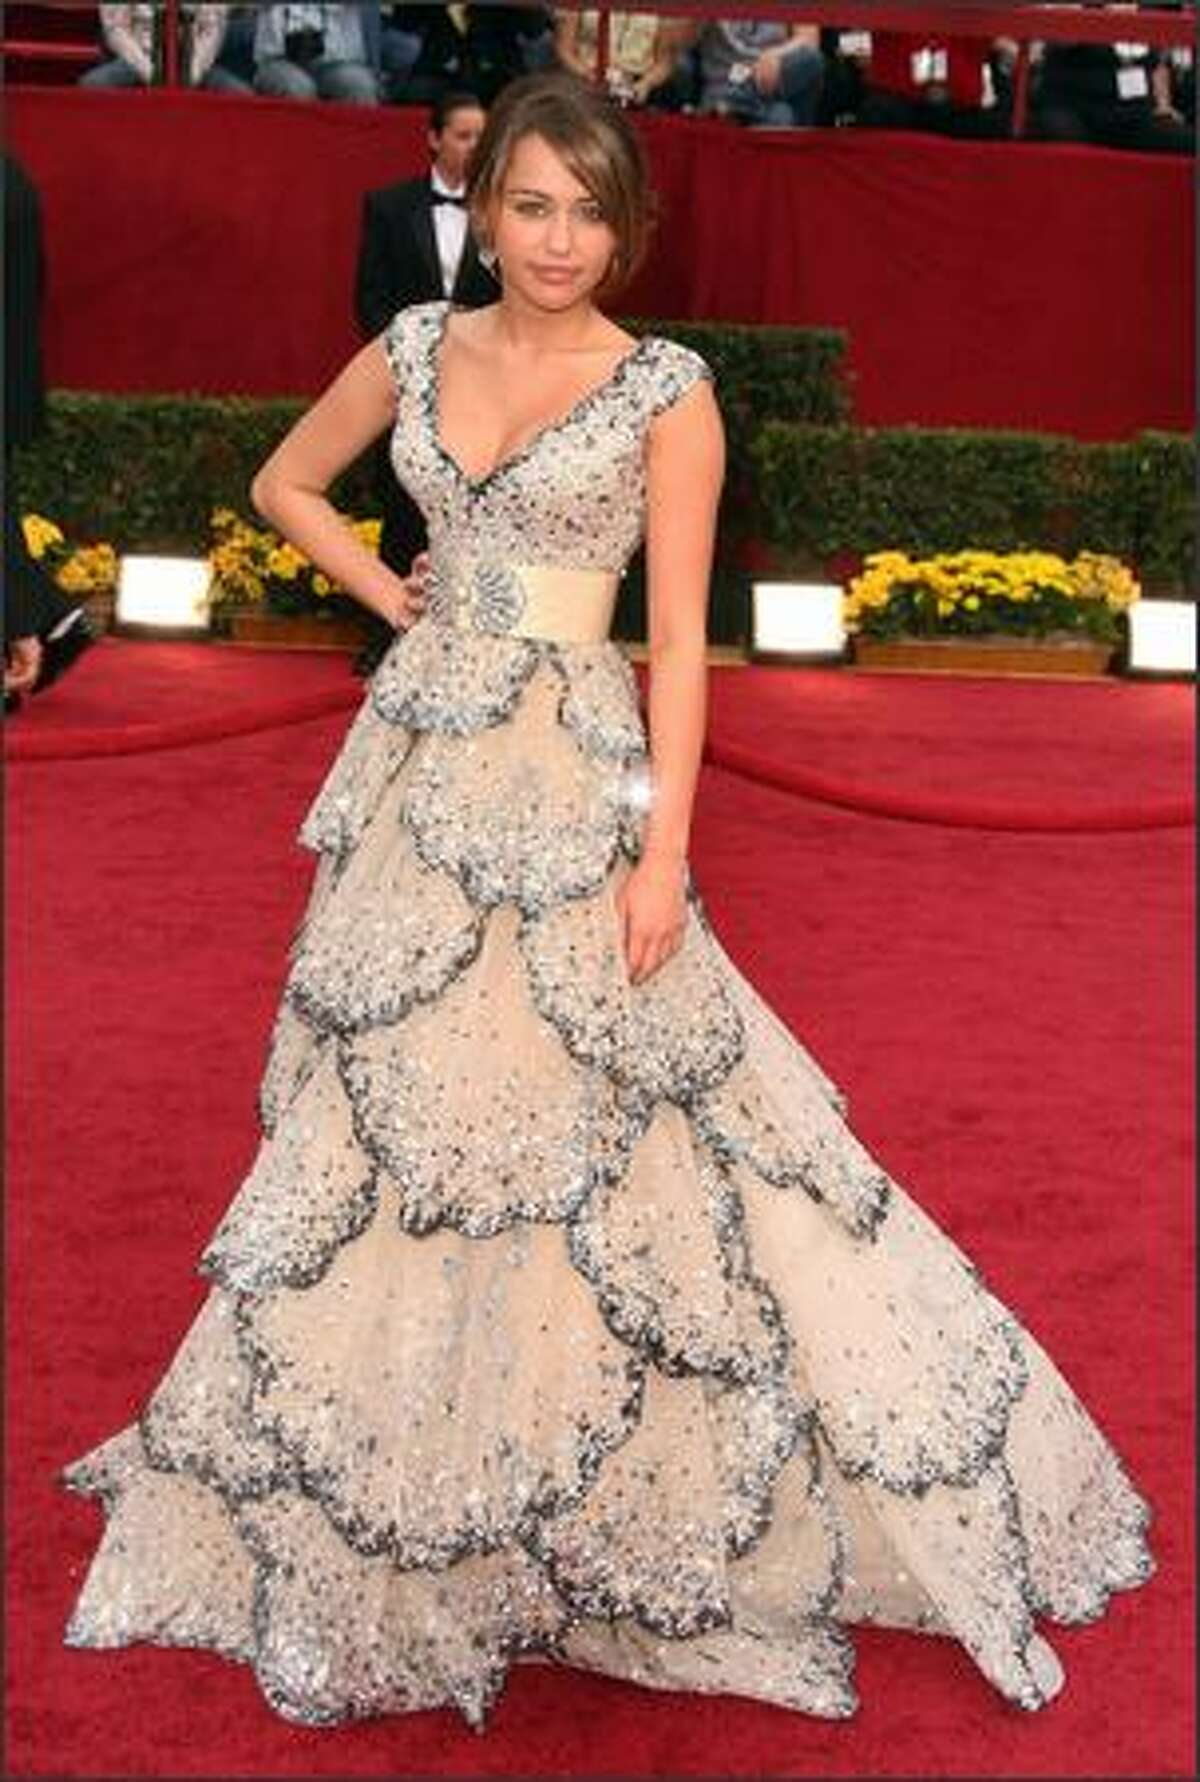 AP: Miley Cyrus' beaded Zuhair Murad dress was mostly white but had tiers of midnight-blue beaded petals.